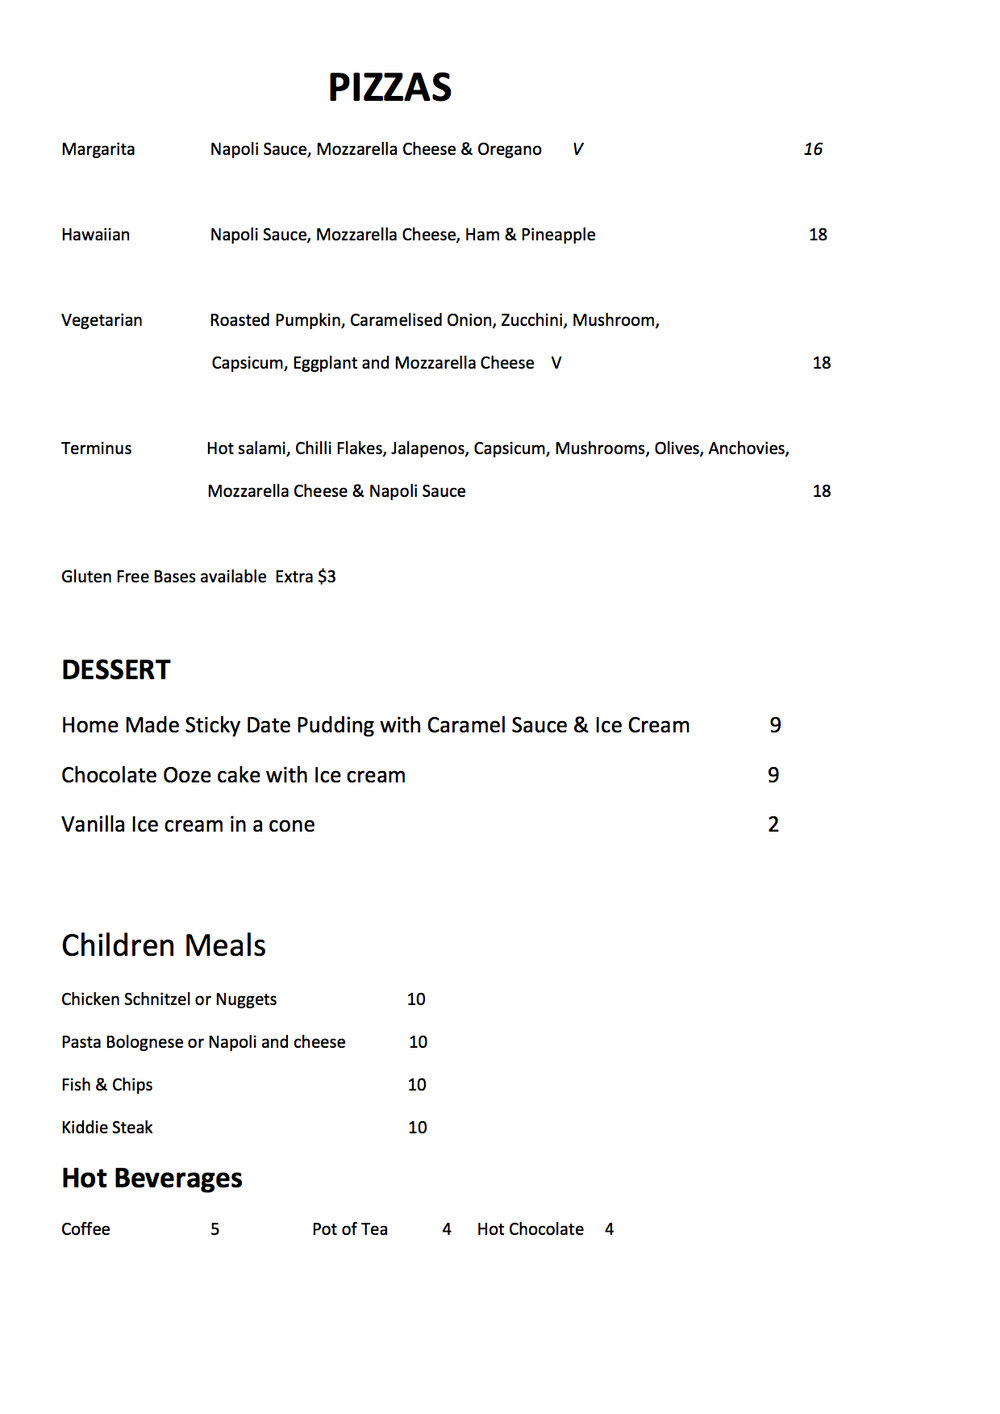 Summer 19 Menu (dragged).jpg